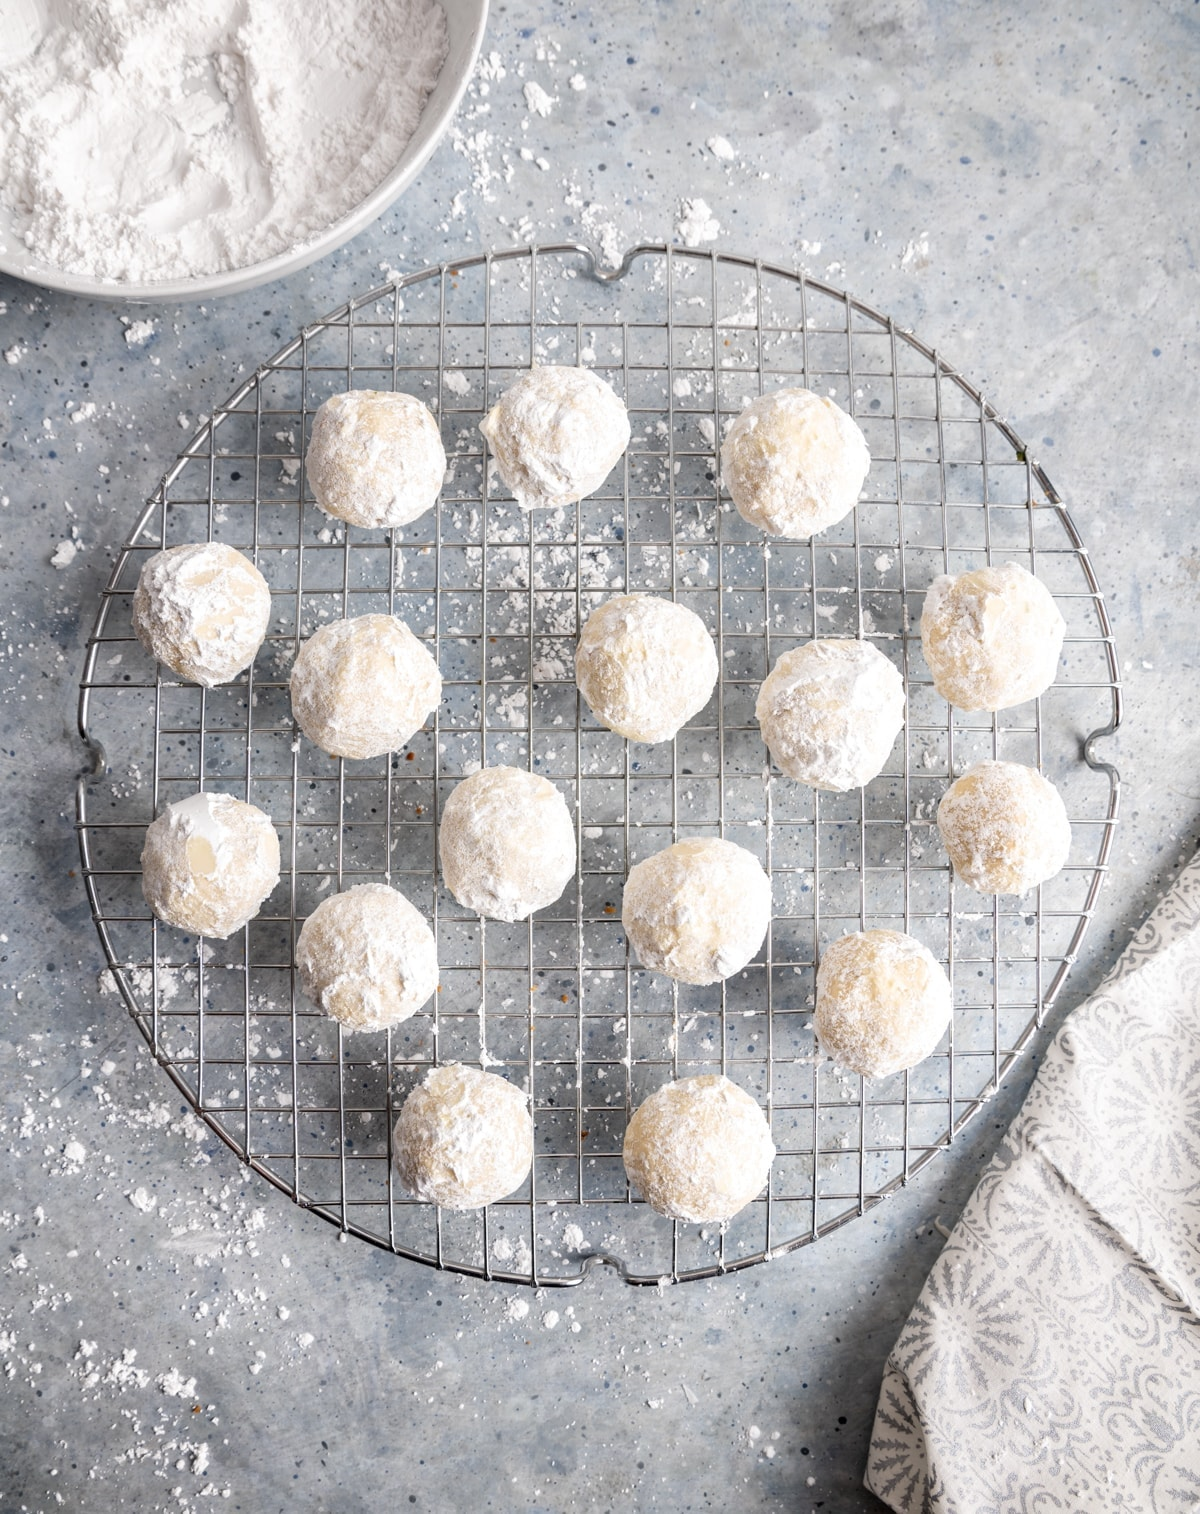 round cookies covered in powdered sugar on a round wire cooling rack